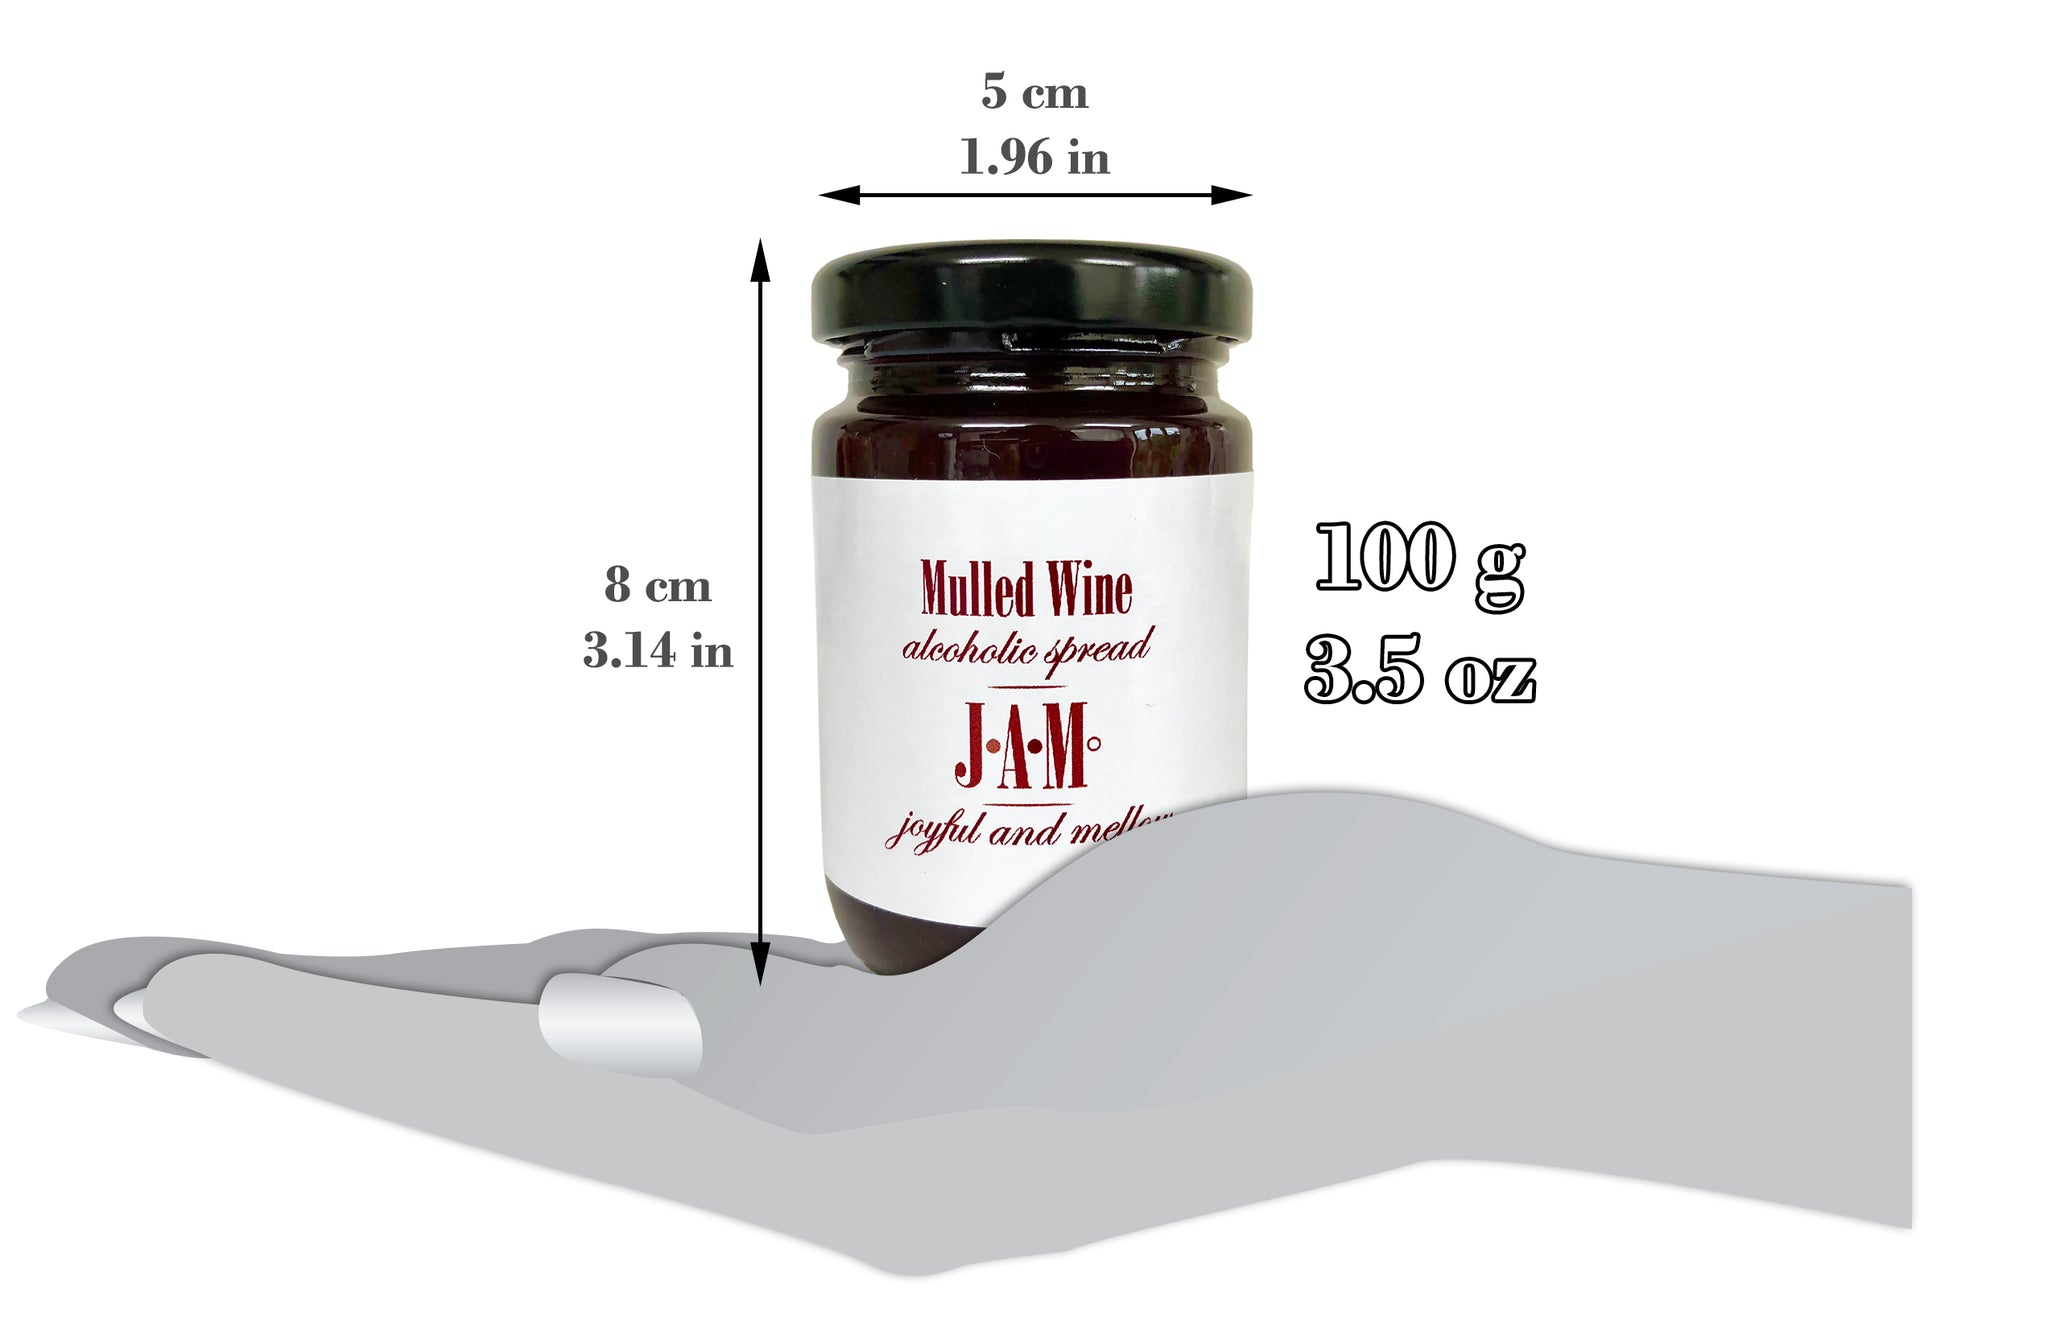 Mulled Wine Alcoholic Spread 100g - 6% ABV